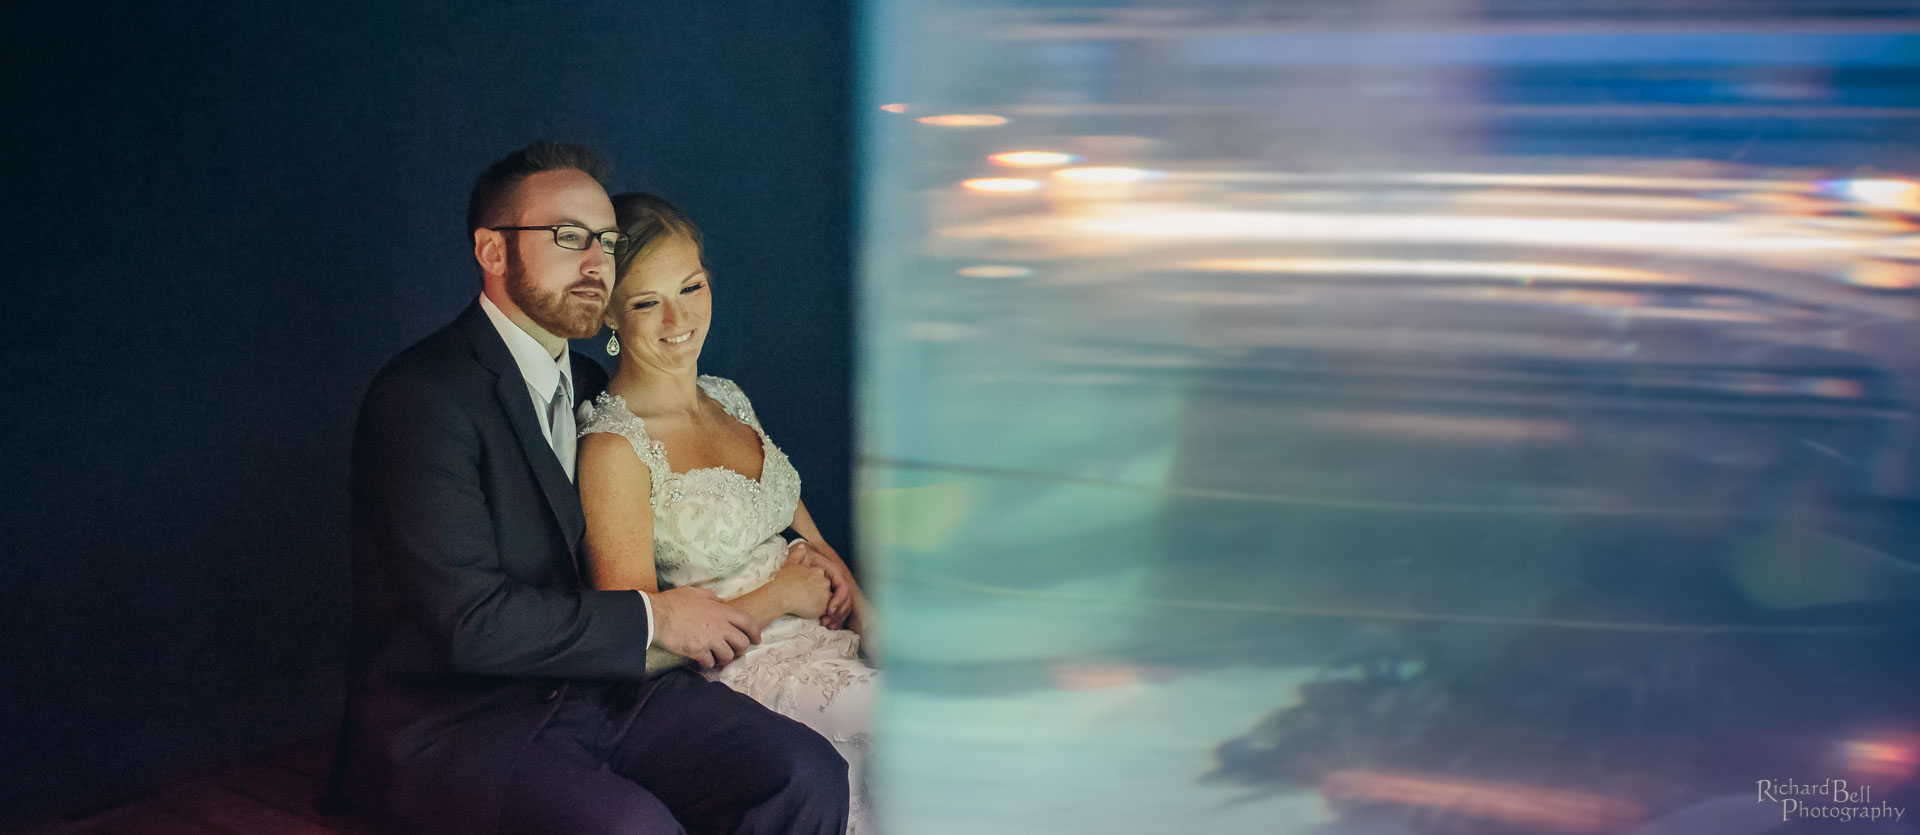 Bride and Groom at fish tank